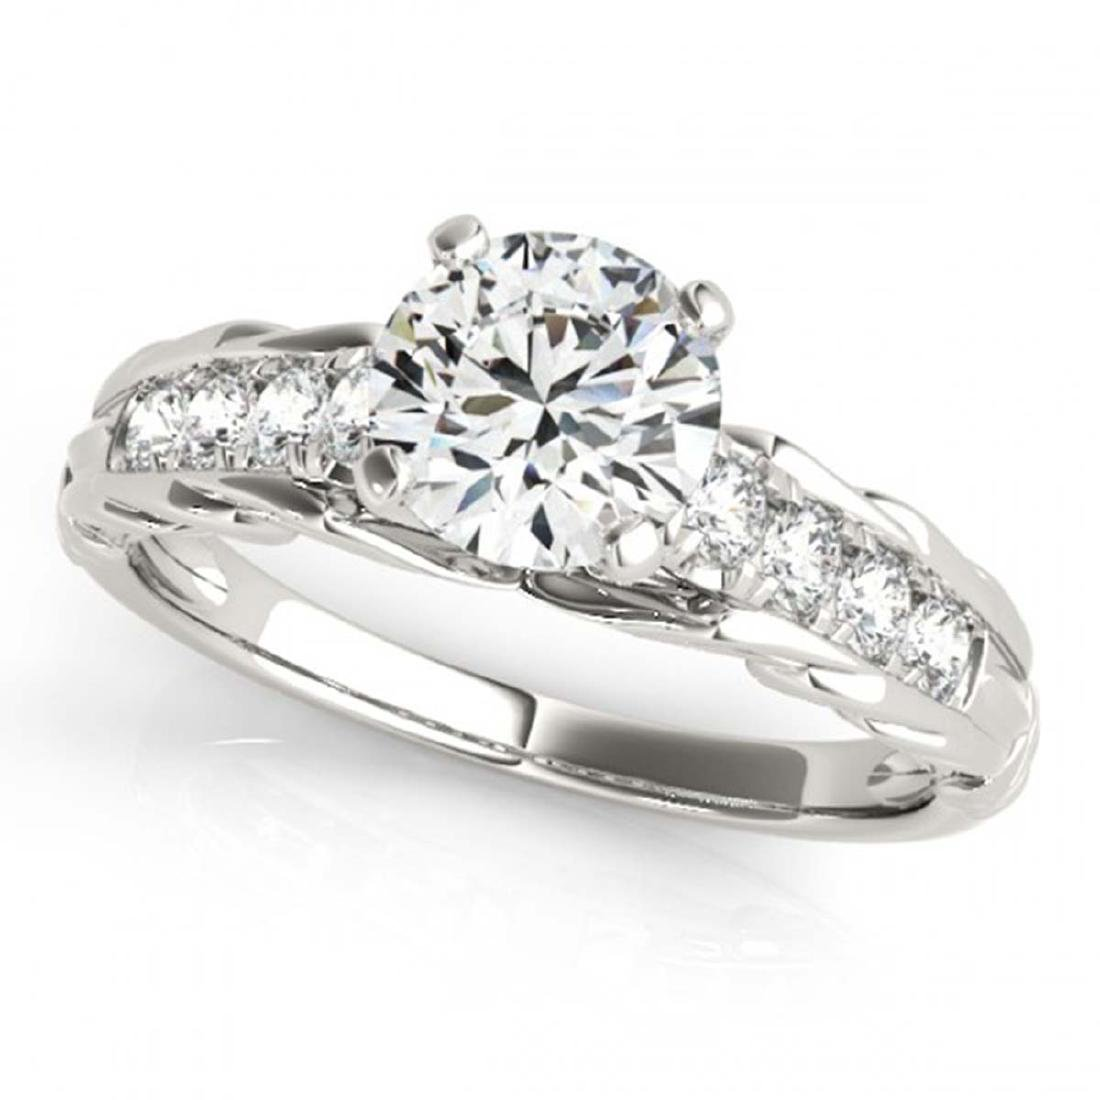 0.95 ctw VS/SI Diamond Solitaire Ring 14K White Gold -